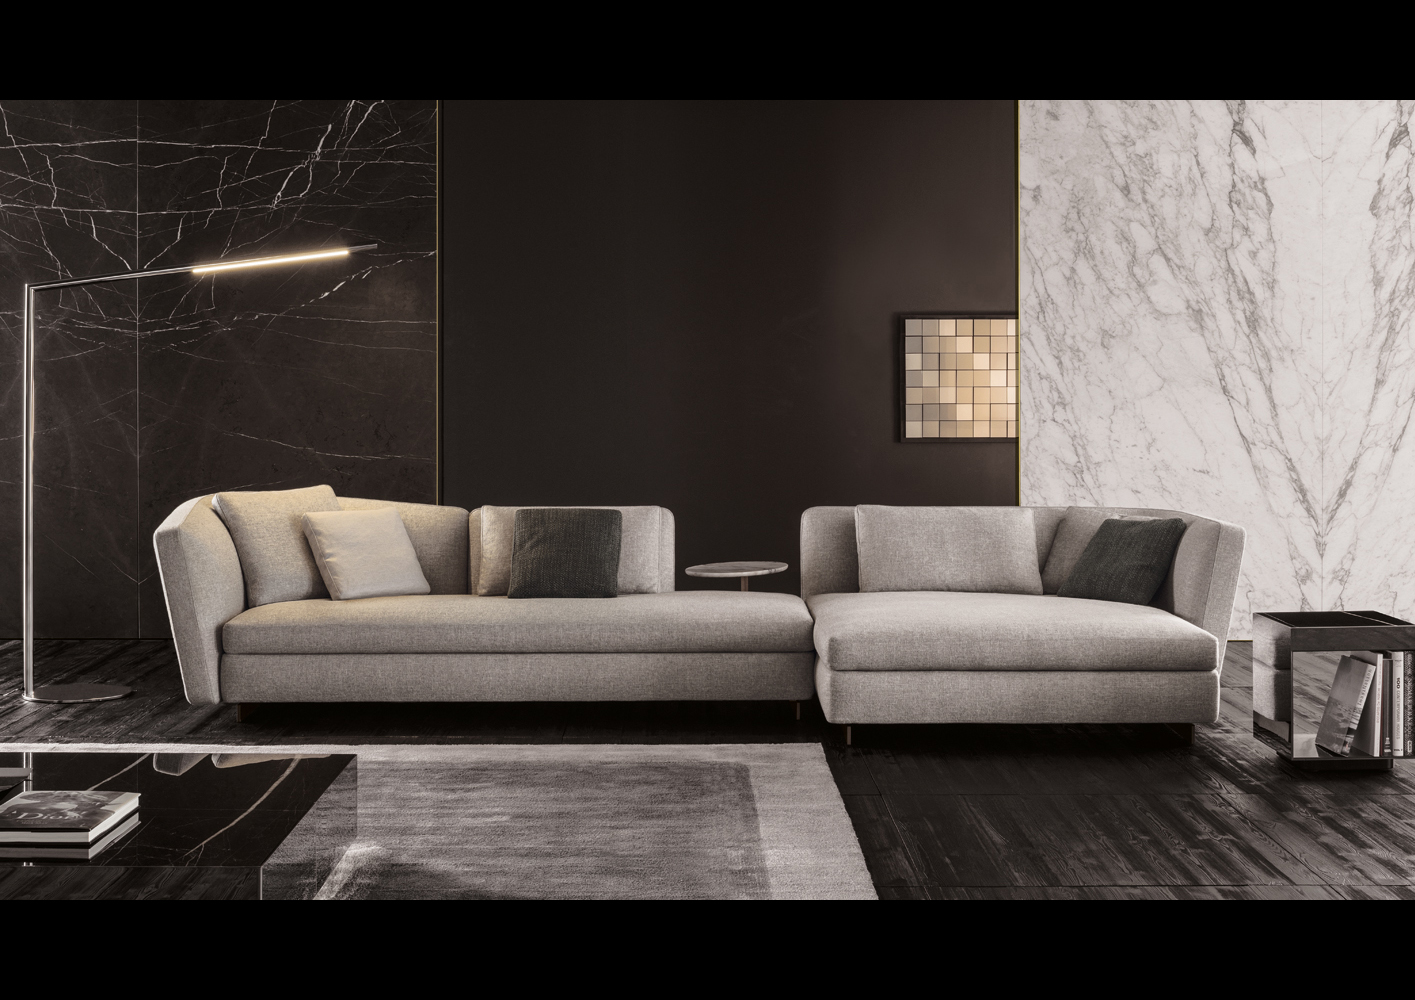 Seymour Sofa | Designed By Rodolfo Dordoni, Minotti, Orange SKin